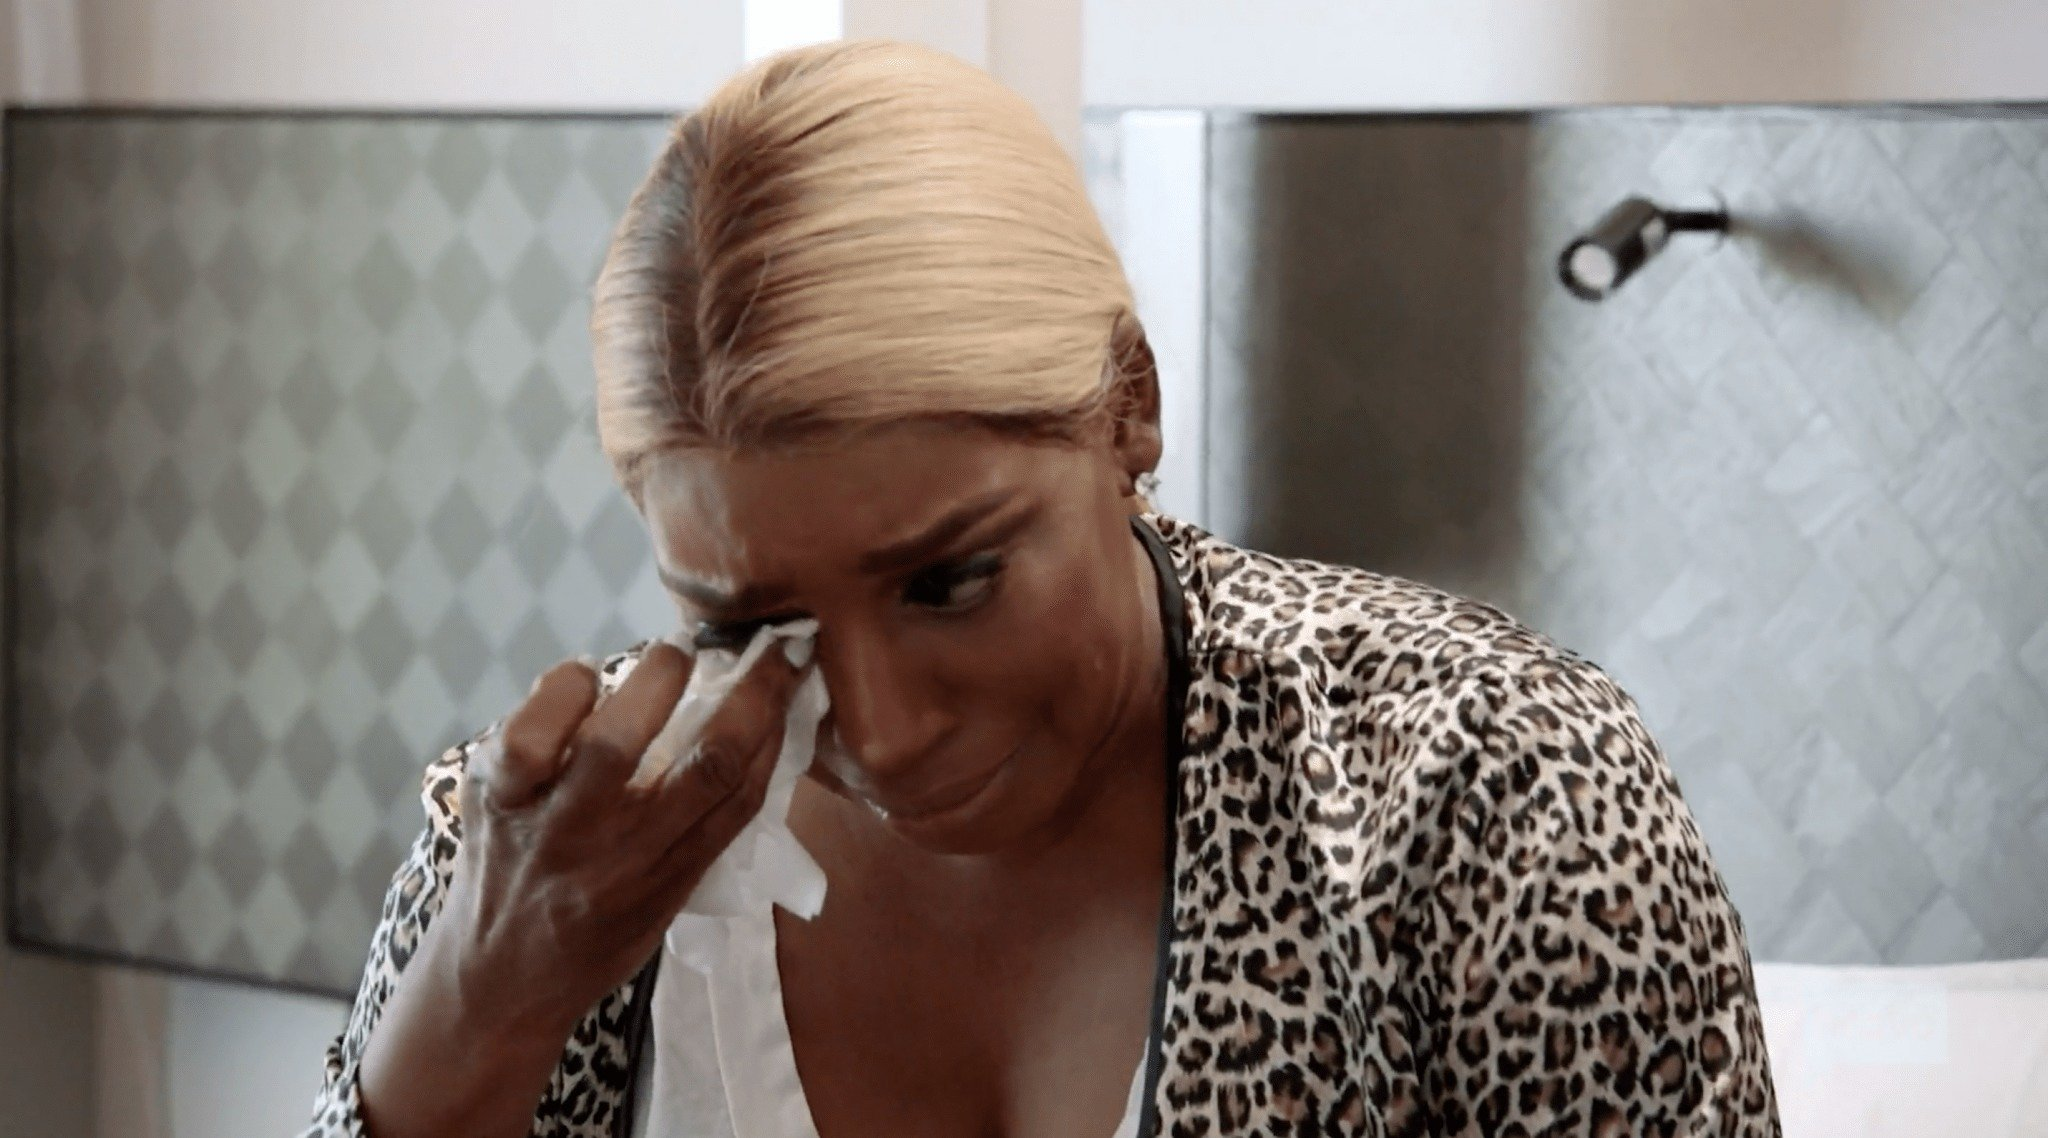 NeNe Leakes Reveals Bravo's Offer That Made Her Leave The RHOA Series – See The Video